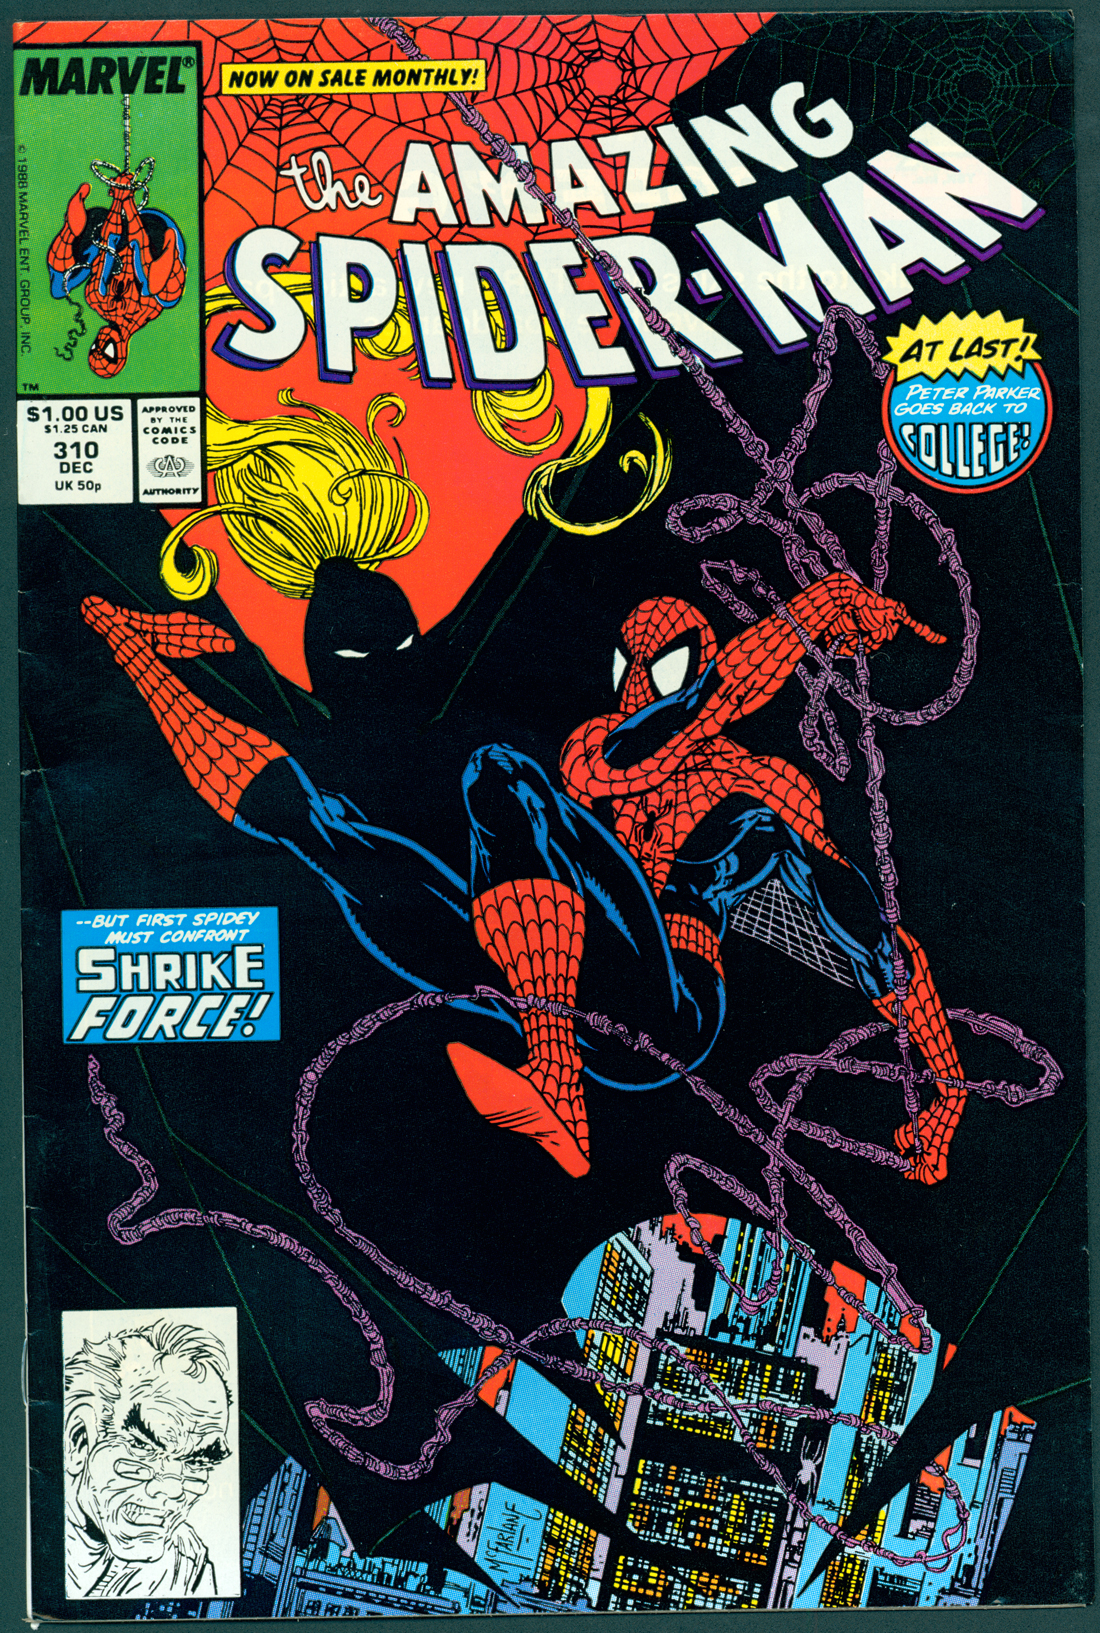 ASM_31ss0_cover